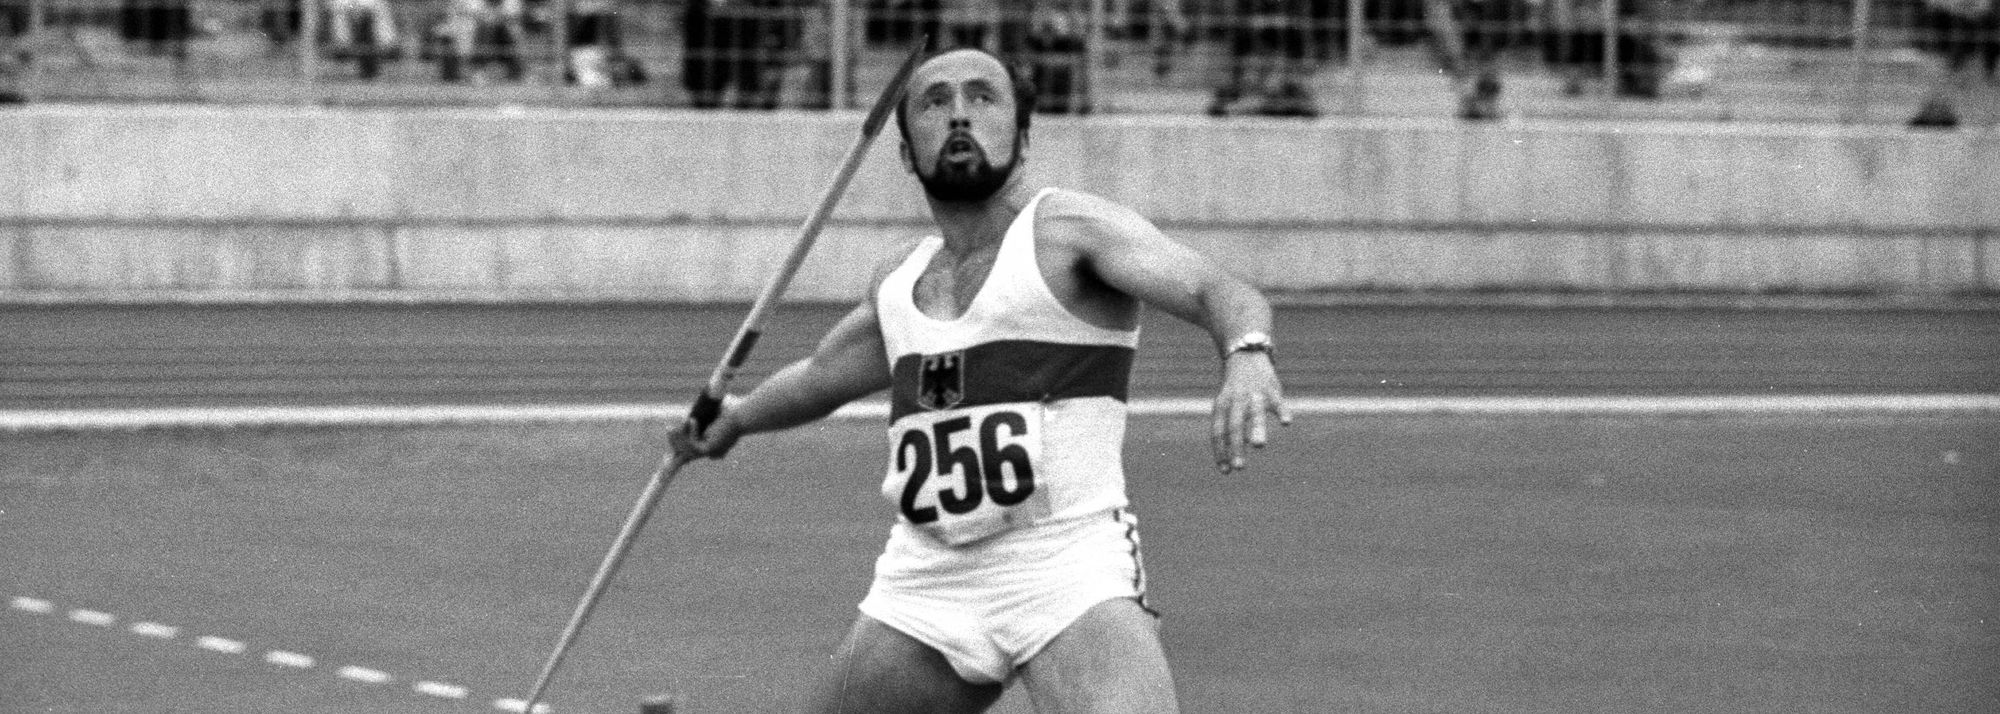 Klaus Wolfermann, the 1972 Olympic javelin champion who one year later became a world record-breaker, recently made the generous donation of his long sleeve jersey from Munich.